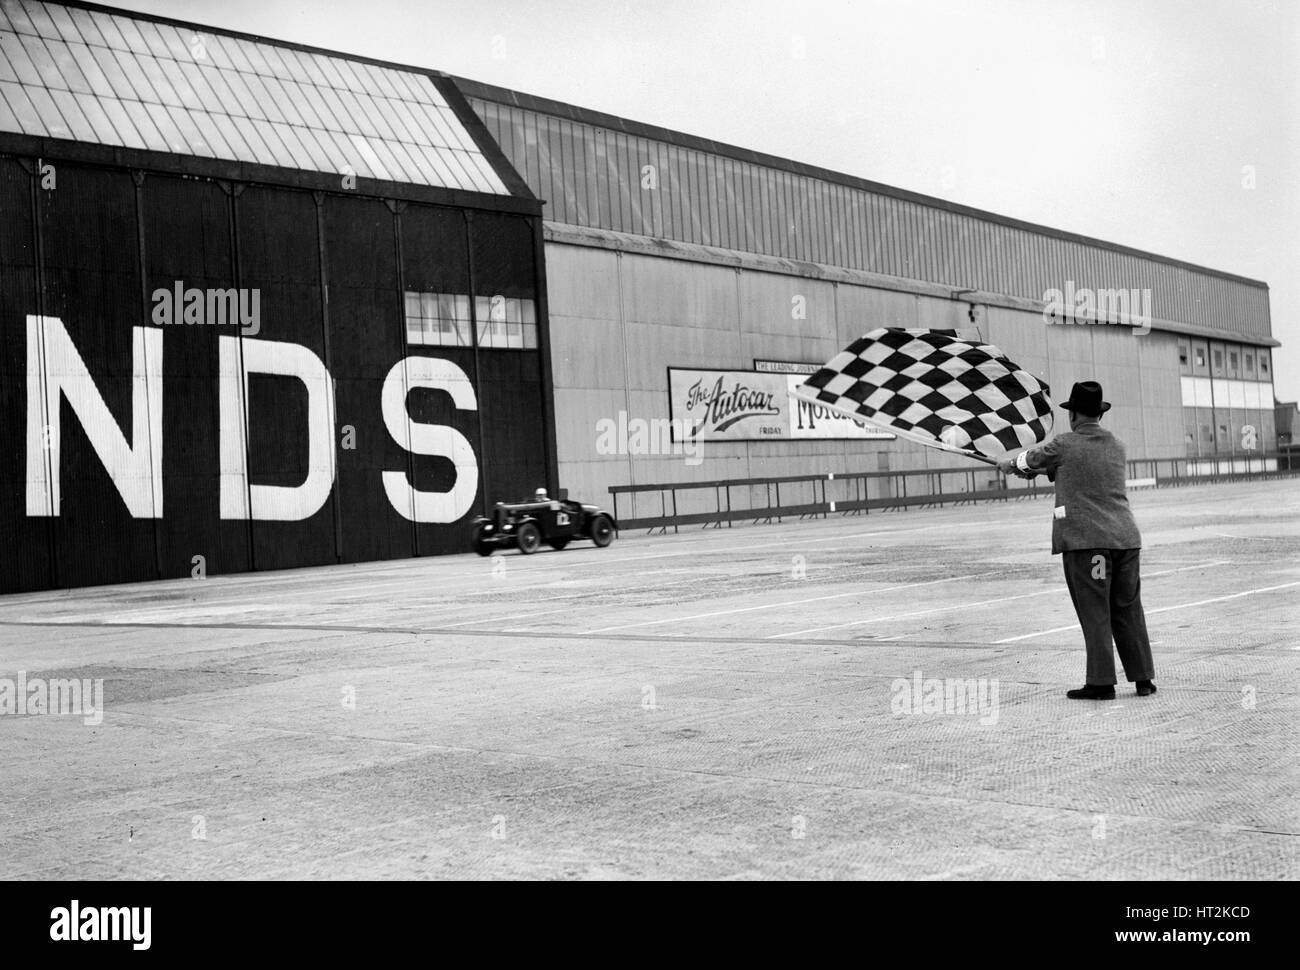 Waving the chequered flag at Brooklands, 1938 or 1939. Artist: Bill Brunell. - Stock Image